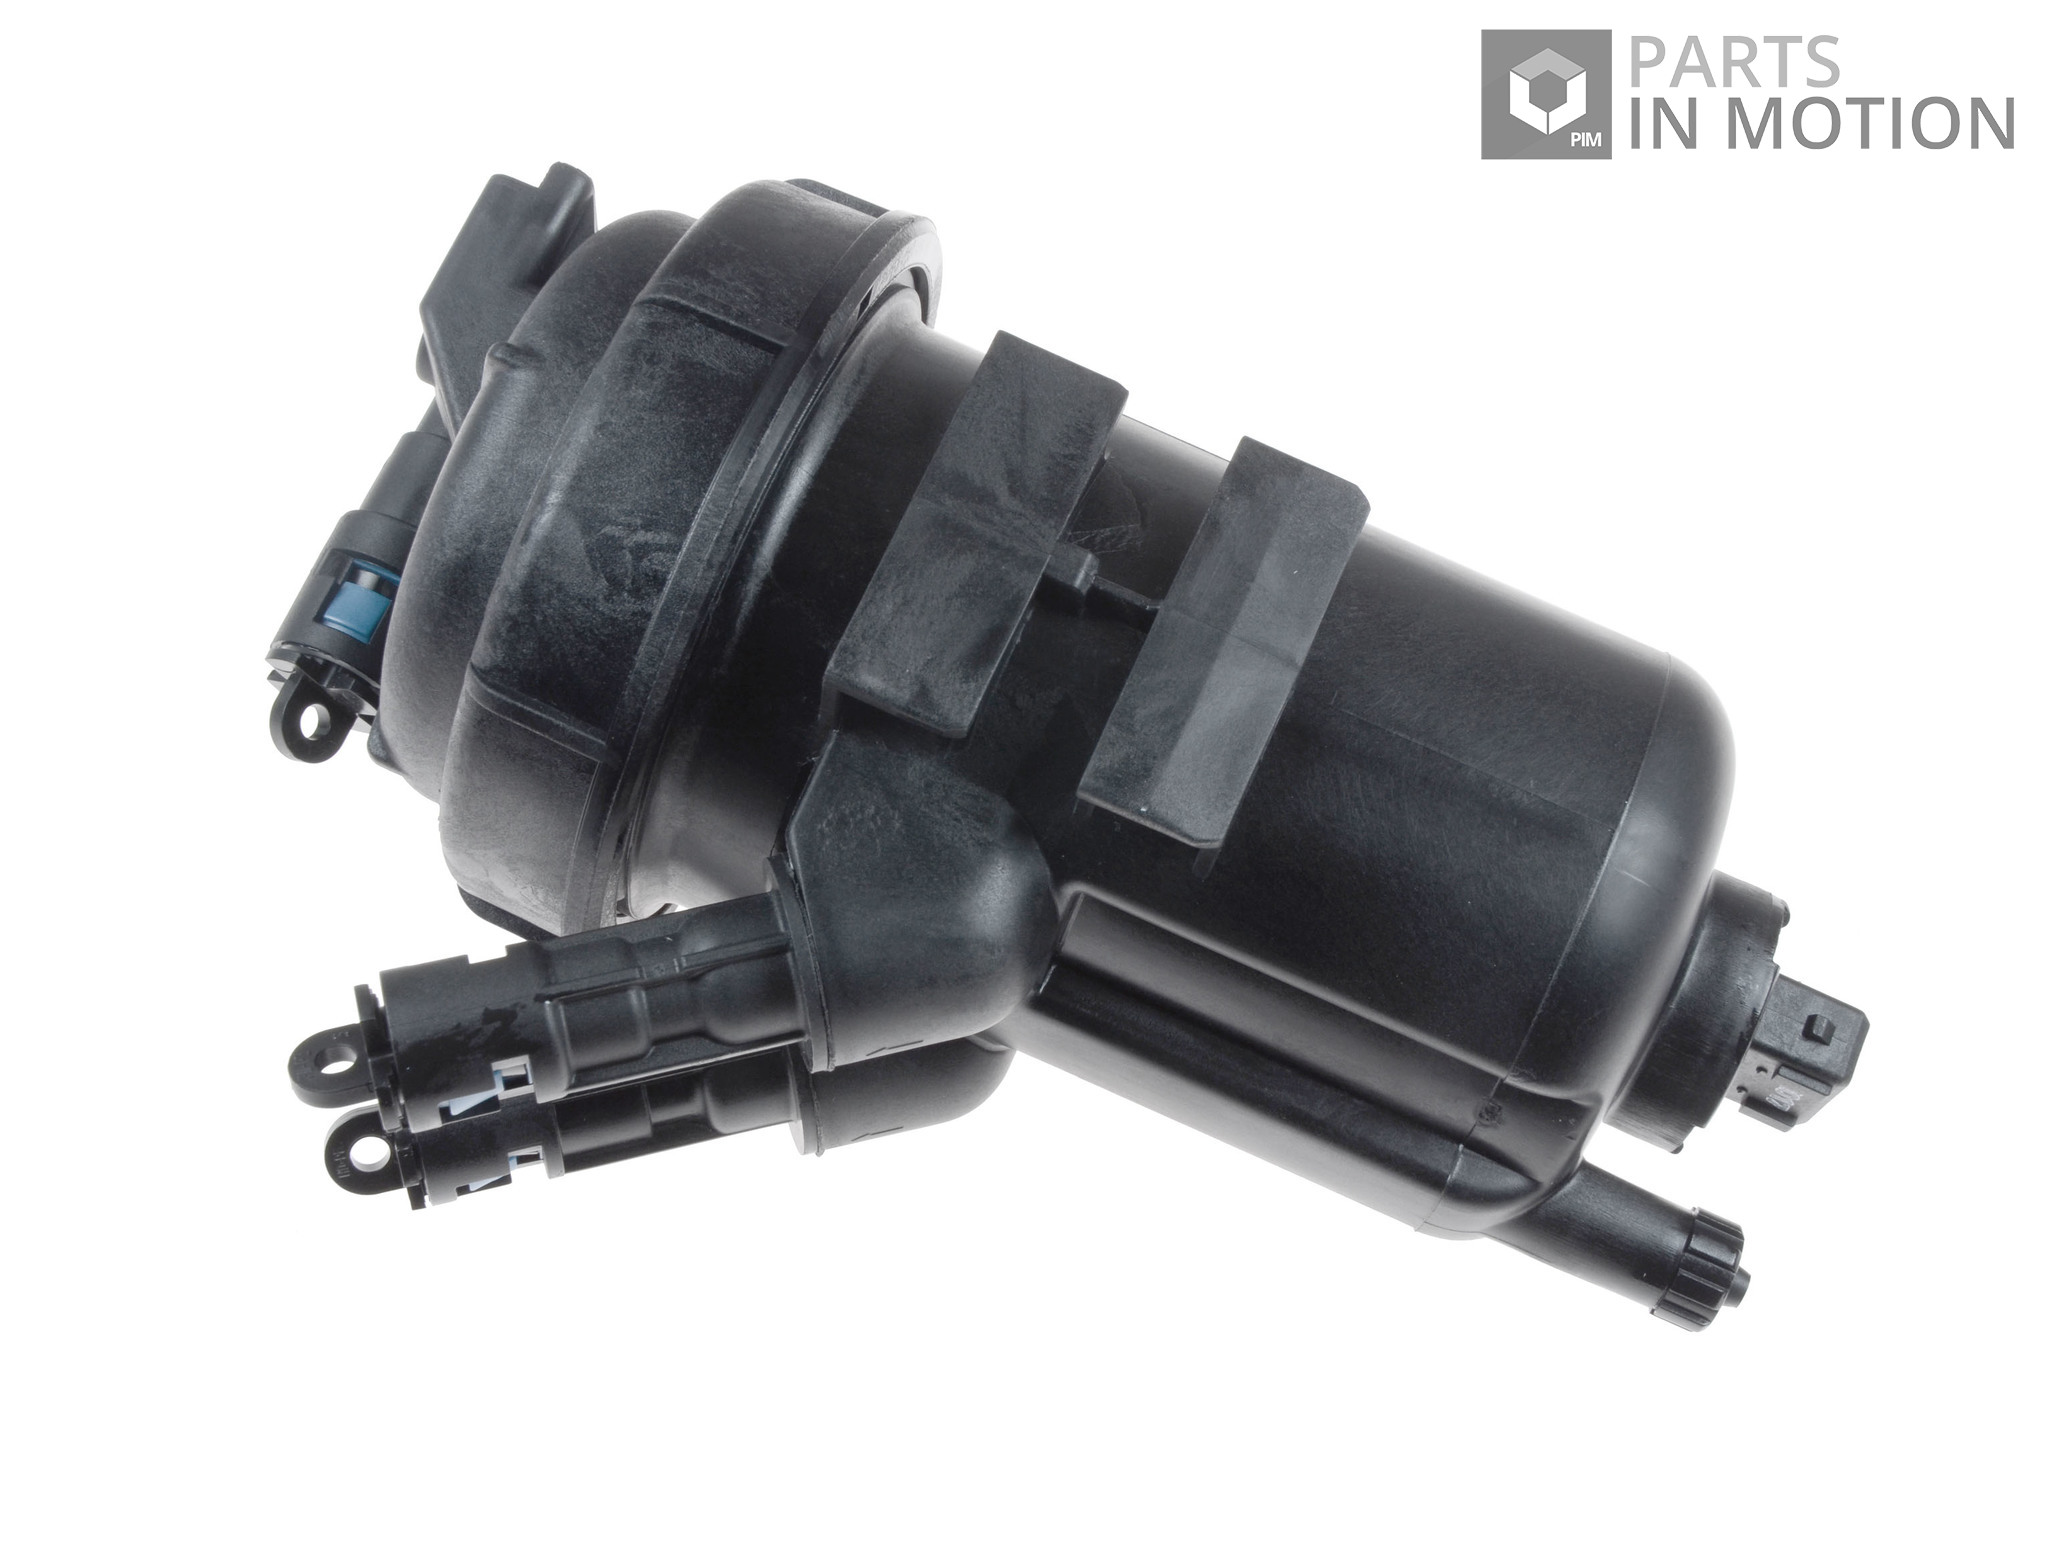 Fuel Filter Housing Free Download 2004 Duramax Fits Opel Meriva A 1 3d 03 To 10 Adl 093179235